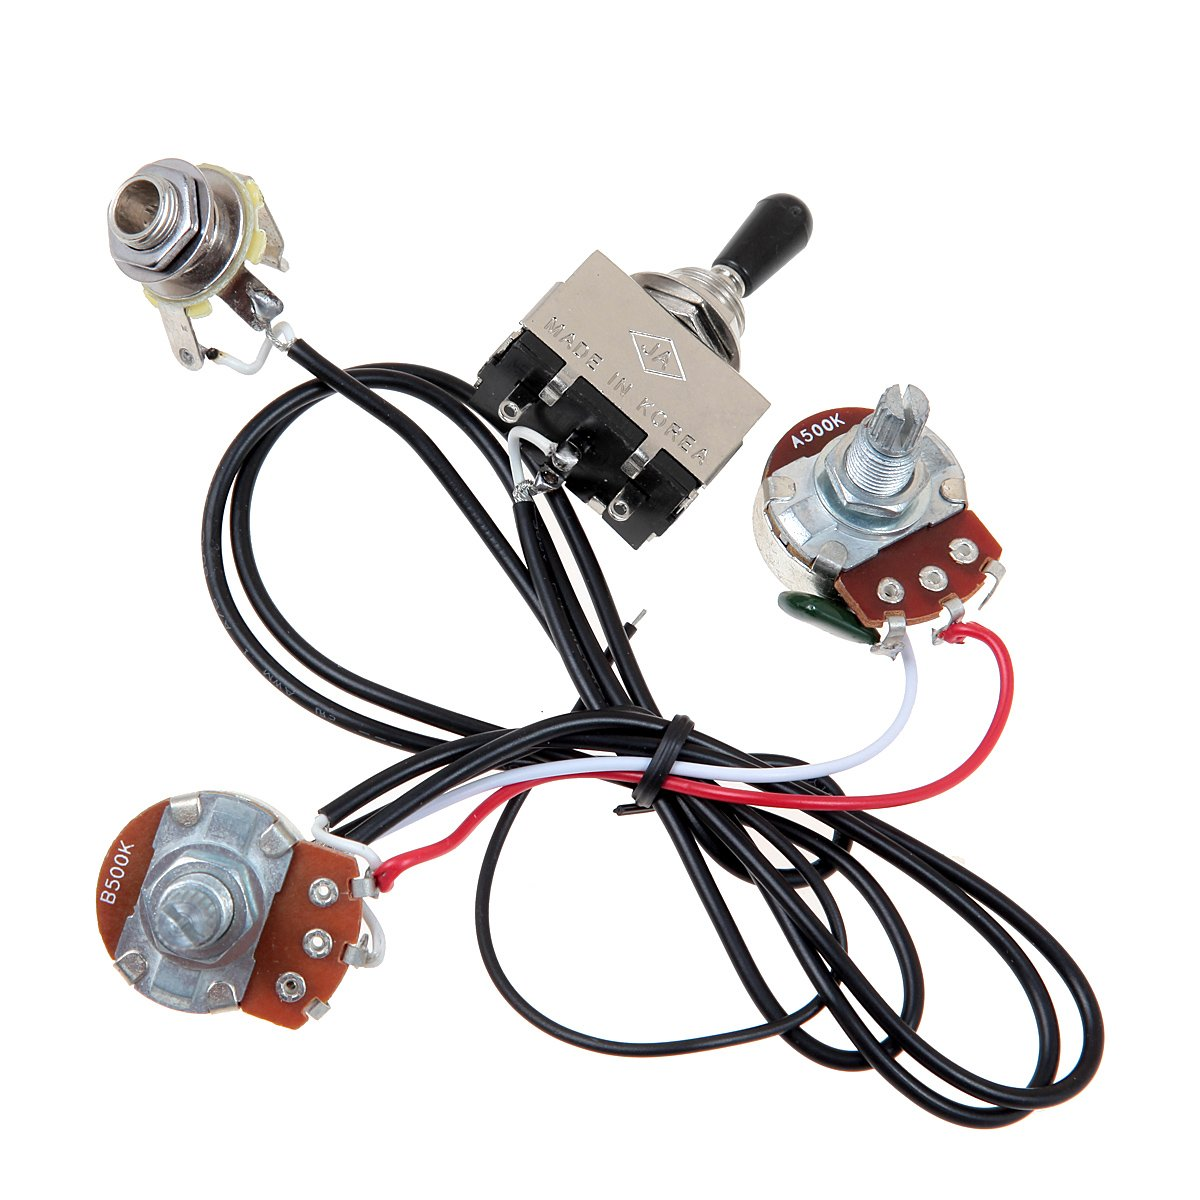 Amazon.com: Kmise MI0321 Guitar Wiring Harness Prewired Two Pickup ...